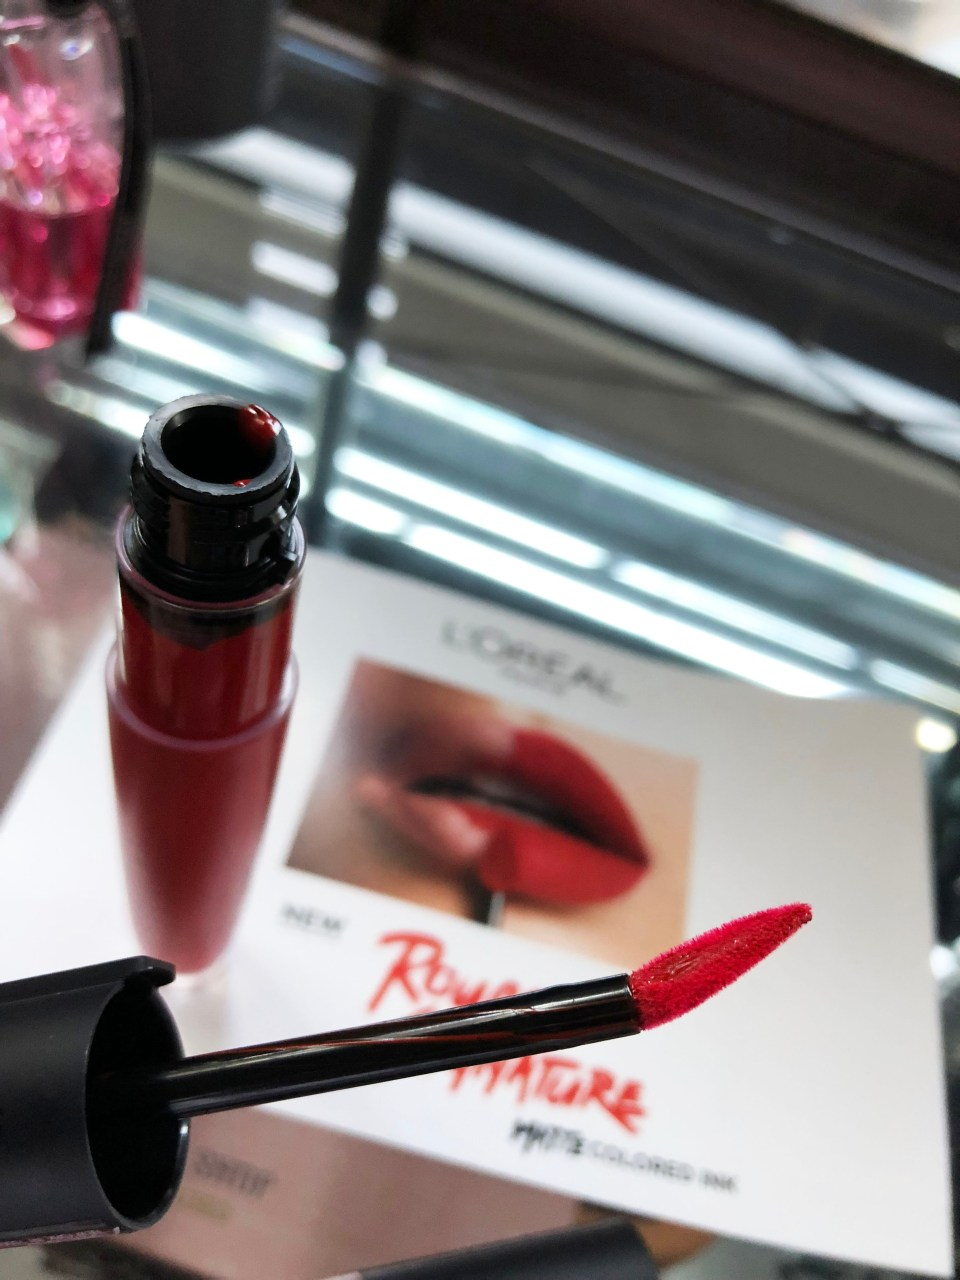 L'Oreal Rouge Signature Matte Colored Ink - I Am Worth It